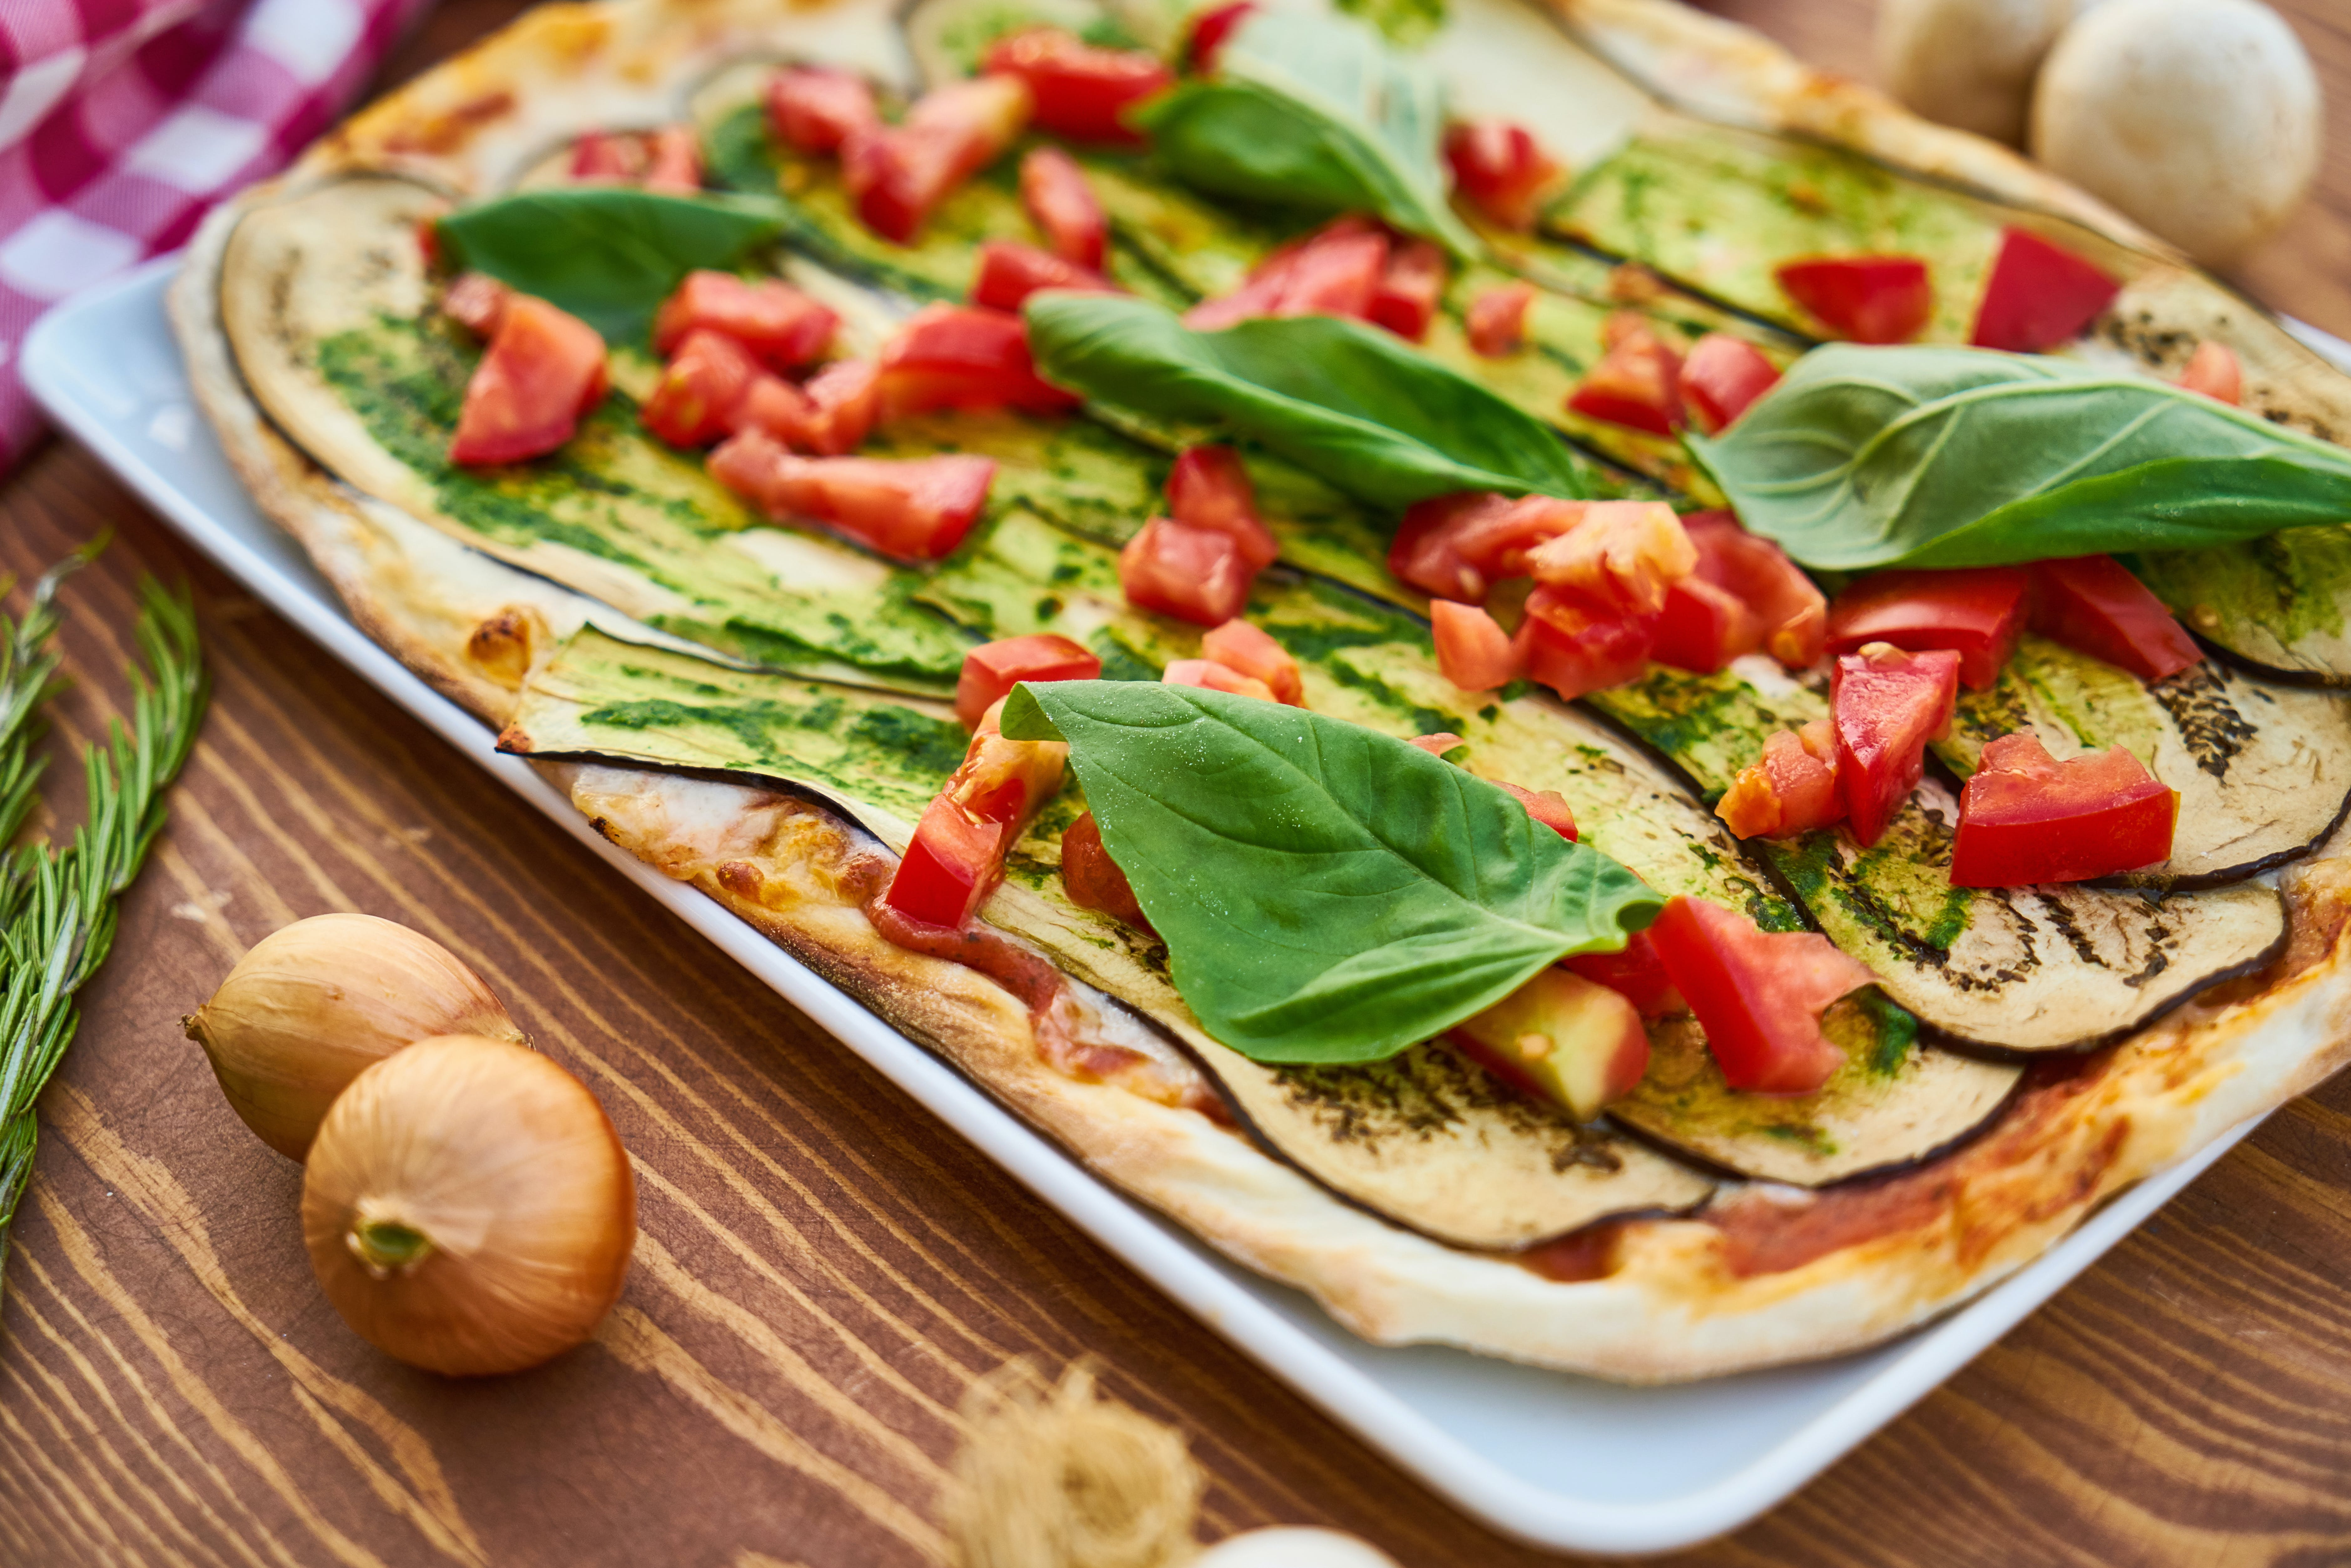 Baked Eggplant With Sliced Tomatoes and Spinach